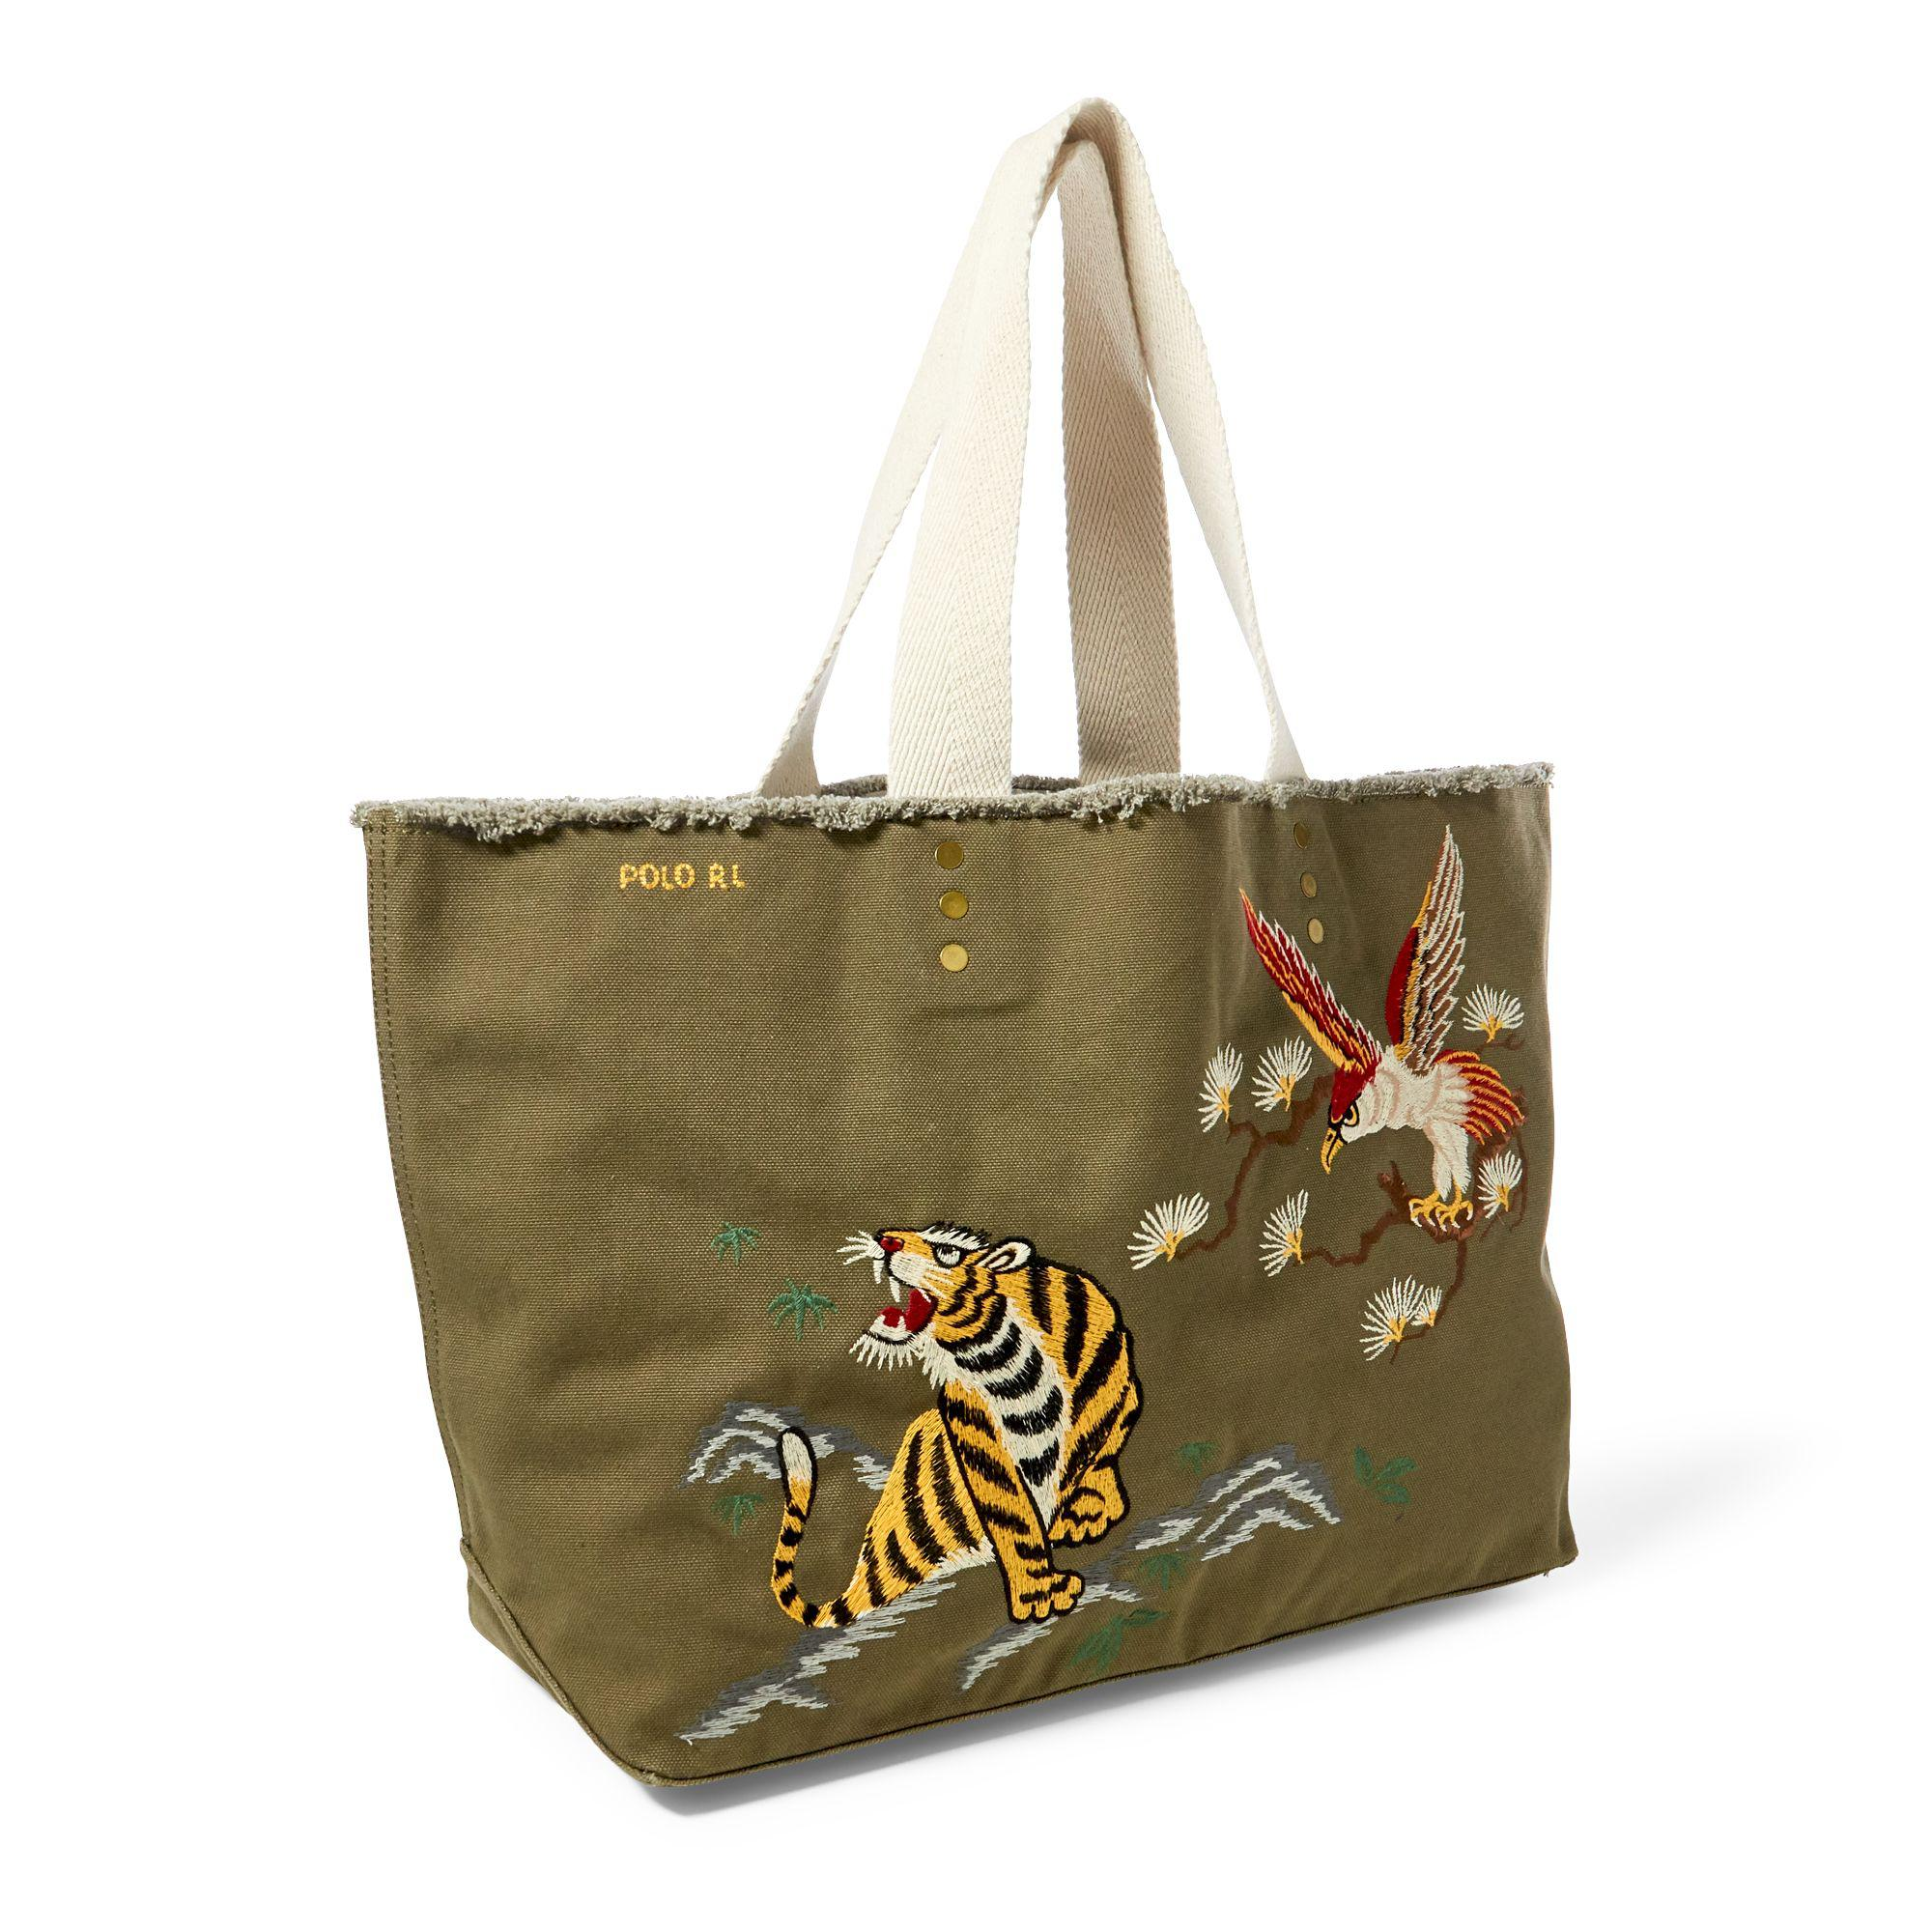 ee24dd03450 Polo Ralph Lauren Tiger-embroidered Canvas Tote in Green - Lyst